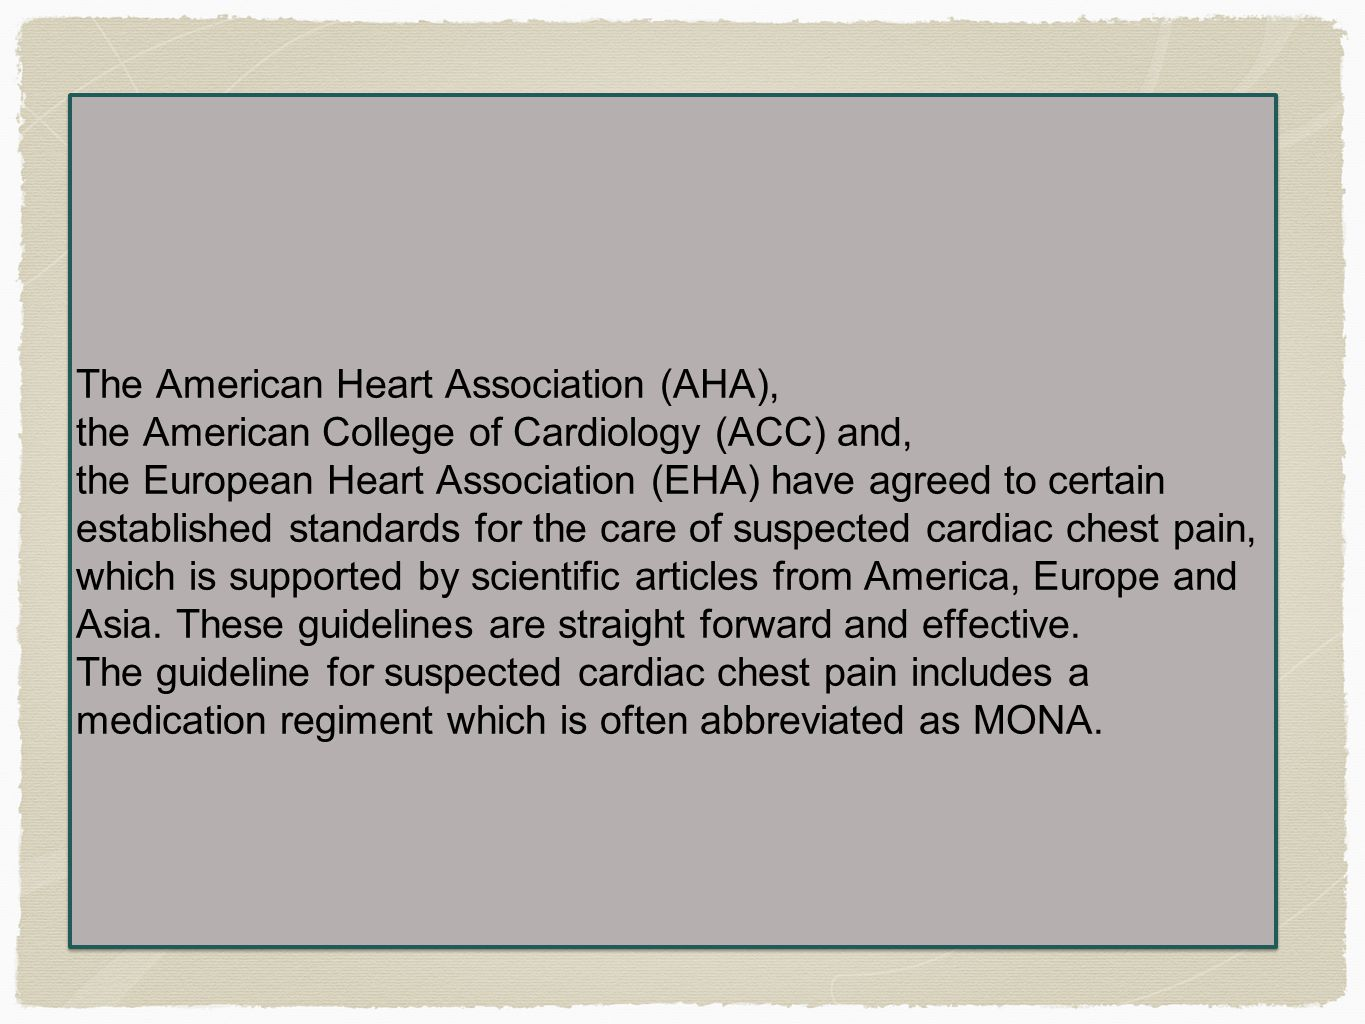 The American Heart Association (AHA), the American College of Cardiology (ACC) and, the European Heart Association (EHA) have agreed to certain established standards for the care of suspected cardiac chest pain, which is supported by scientific articles from America, Europe and Asia.